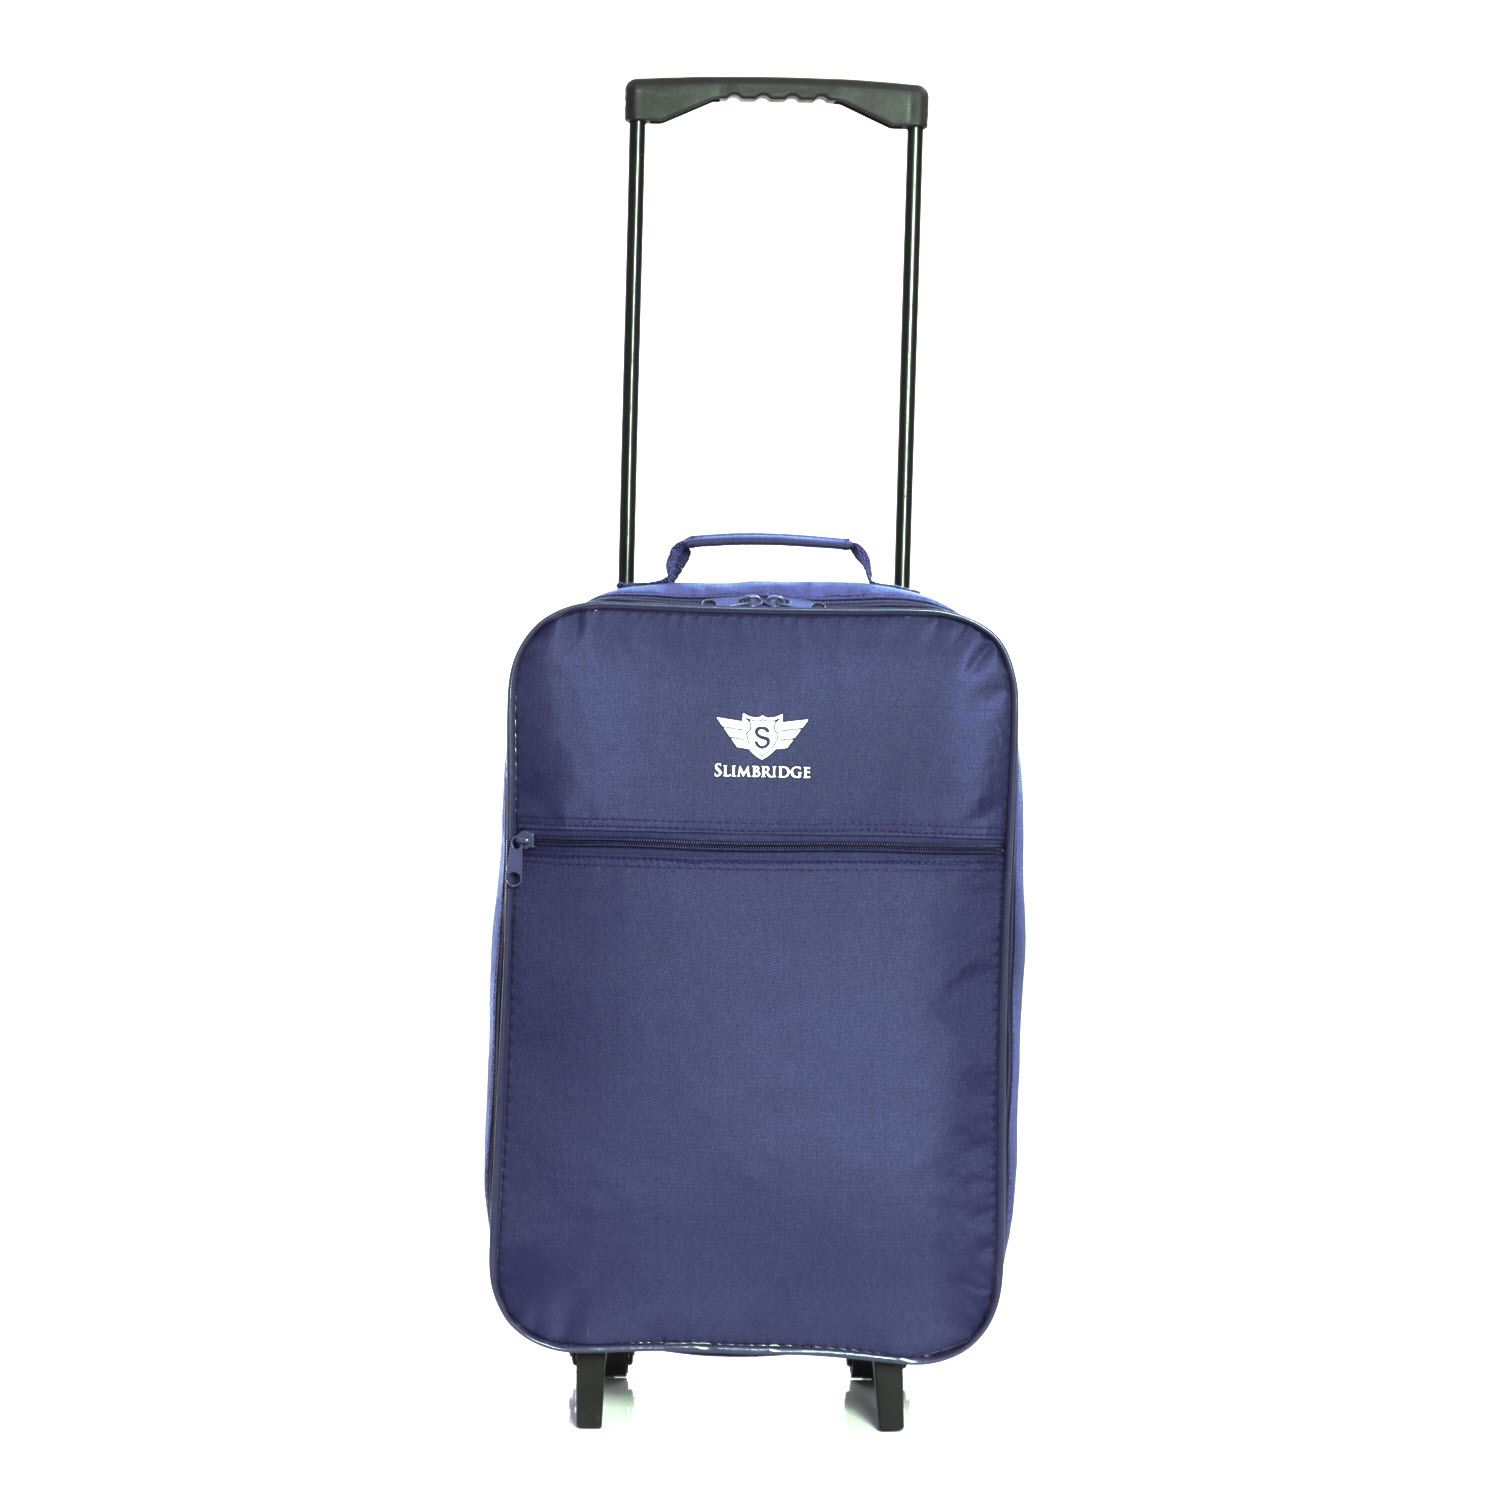 Easyjet flybe ryanair cabin carry on hand luggage trolley suitcase case bag ebay - Equipaje de cabina easyjet ...